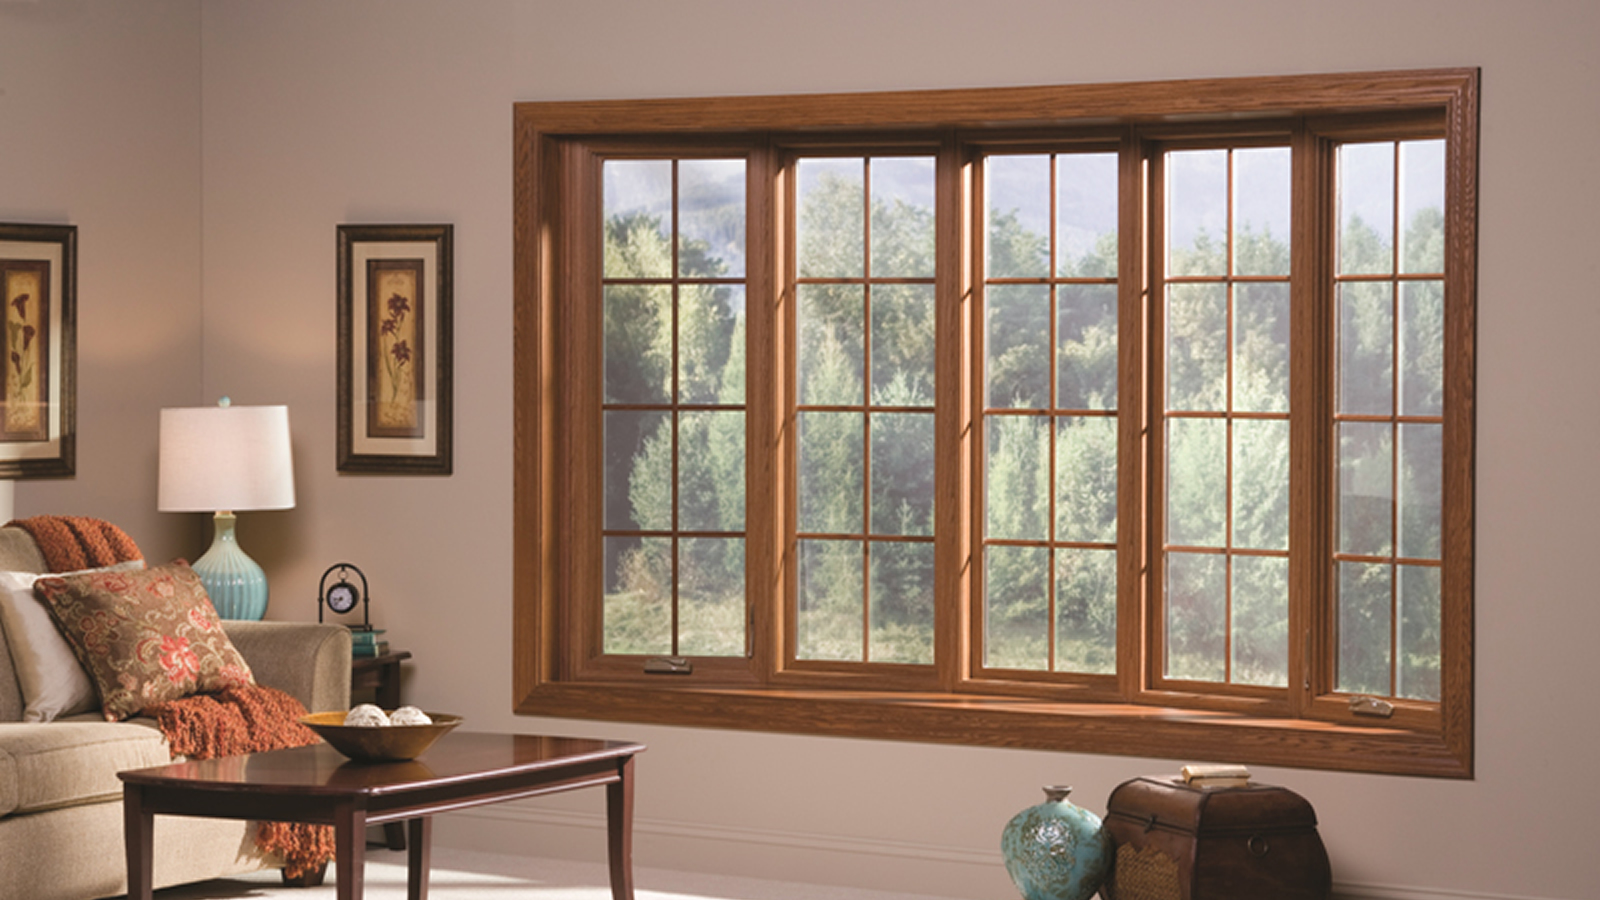 What makes an energy efficient window news see thru for What makes a window energy efficient